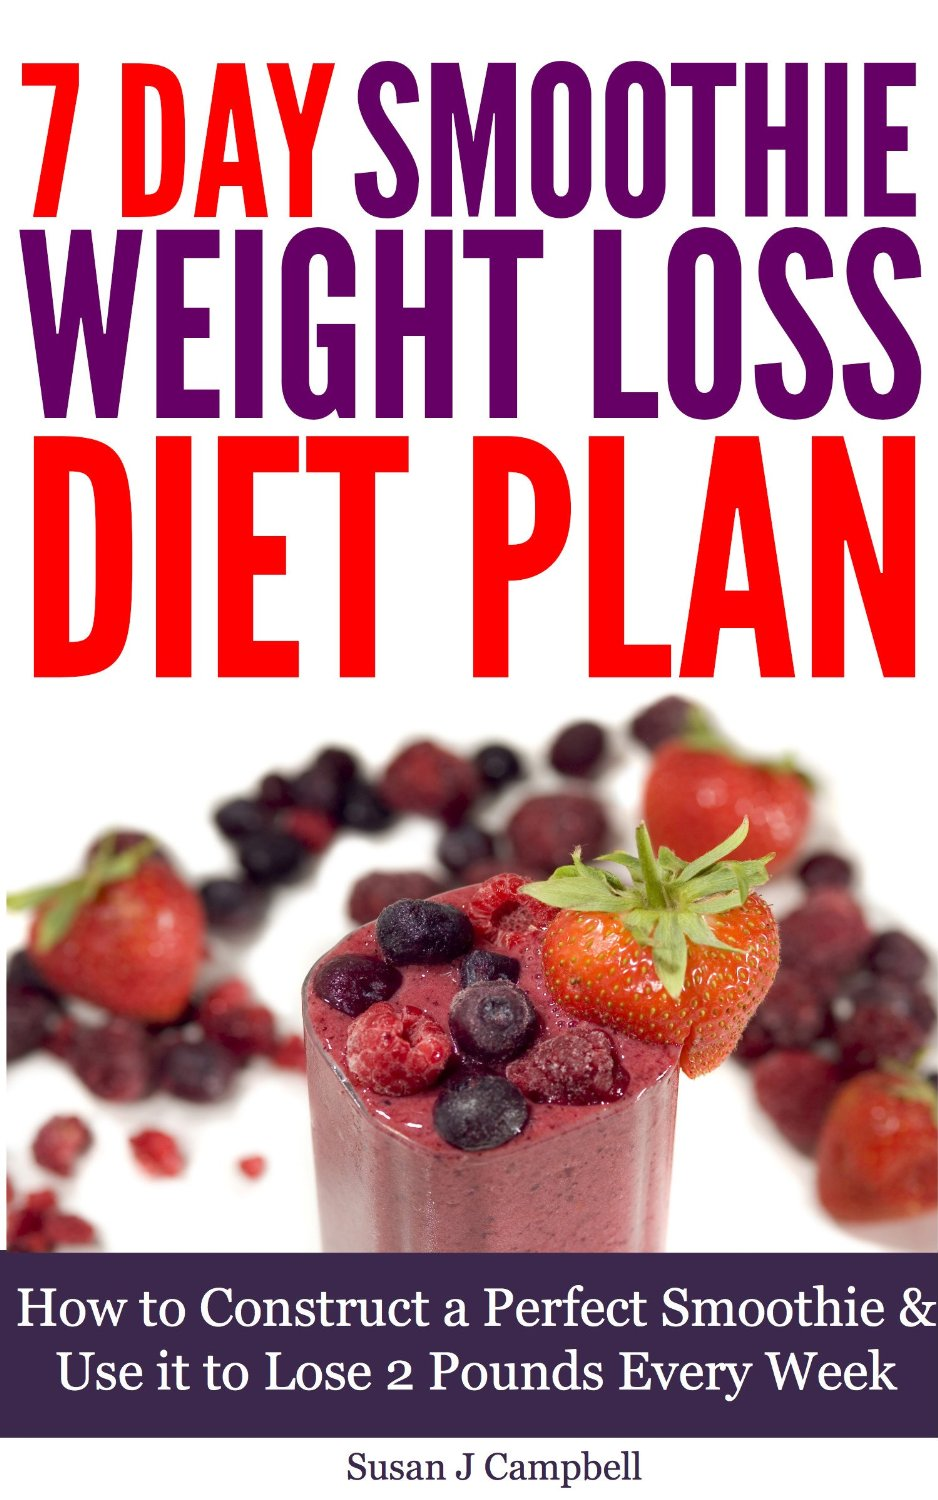 Free Book: 7 Day Smoothie Weight Loss Diet Plan